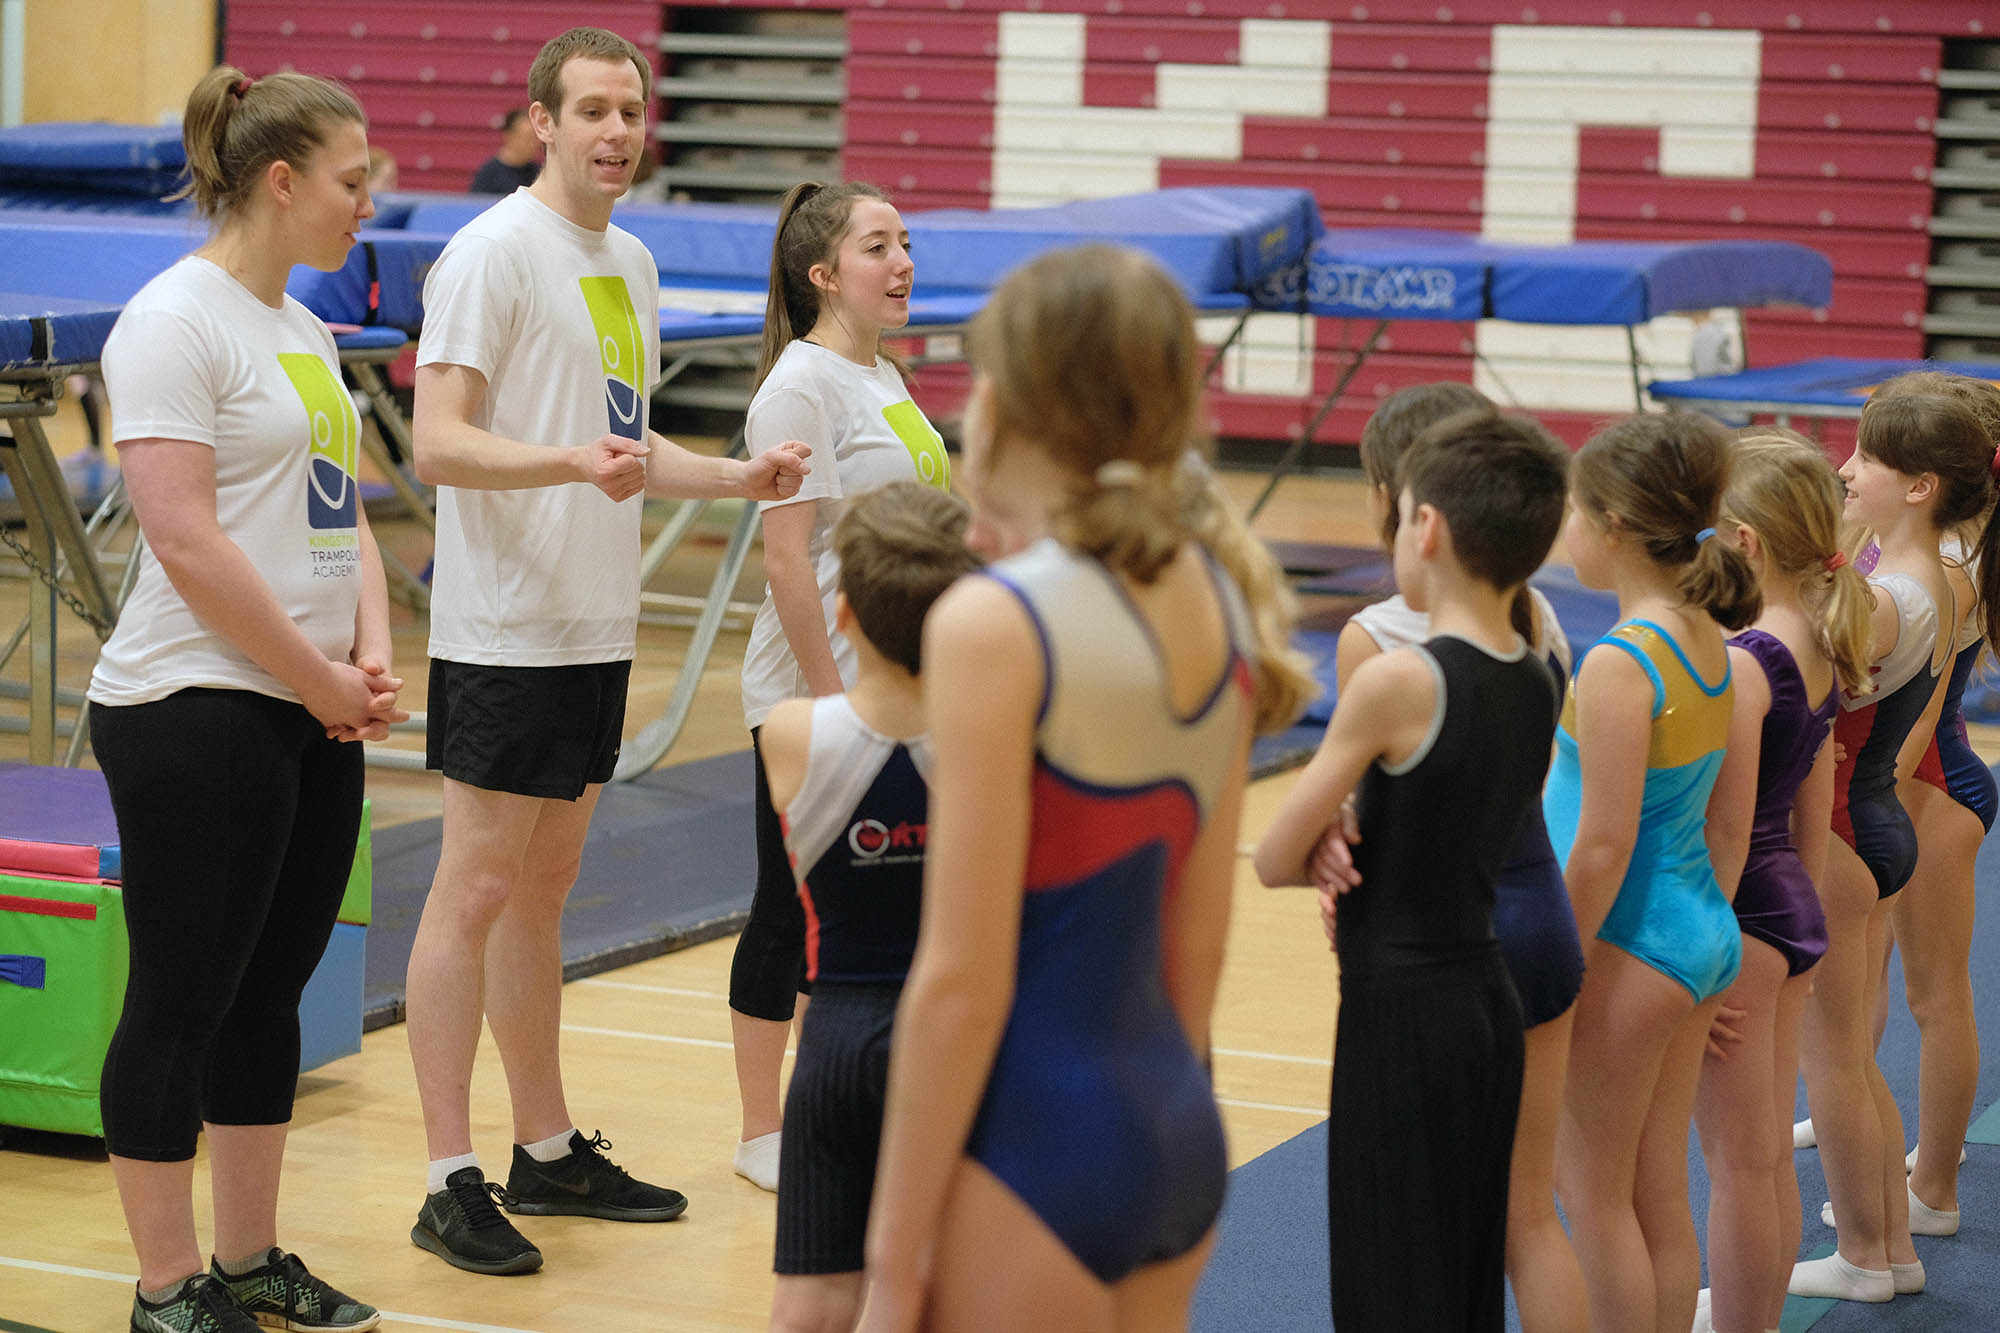 Always learning and having fun at Kingston Trampoline Academy.